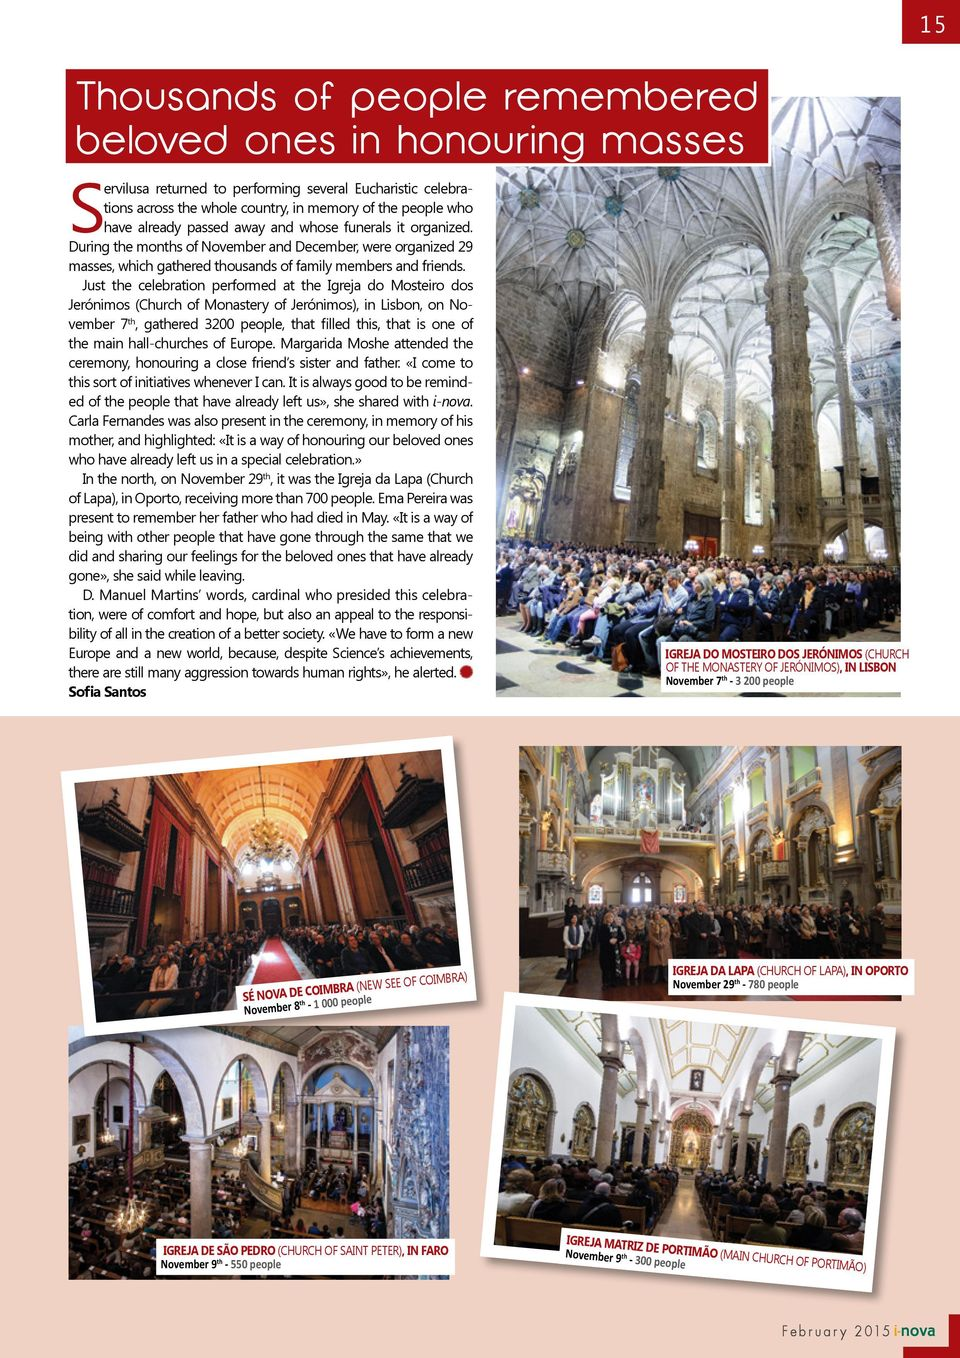 Just the celebration performed at the Igreja do Mosteiro dos Jerónimos (Church of Monastery of Jerónimos), in Lisbon, on November 7 th, gathered 3200 people, that filled this, that is one of the main